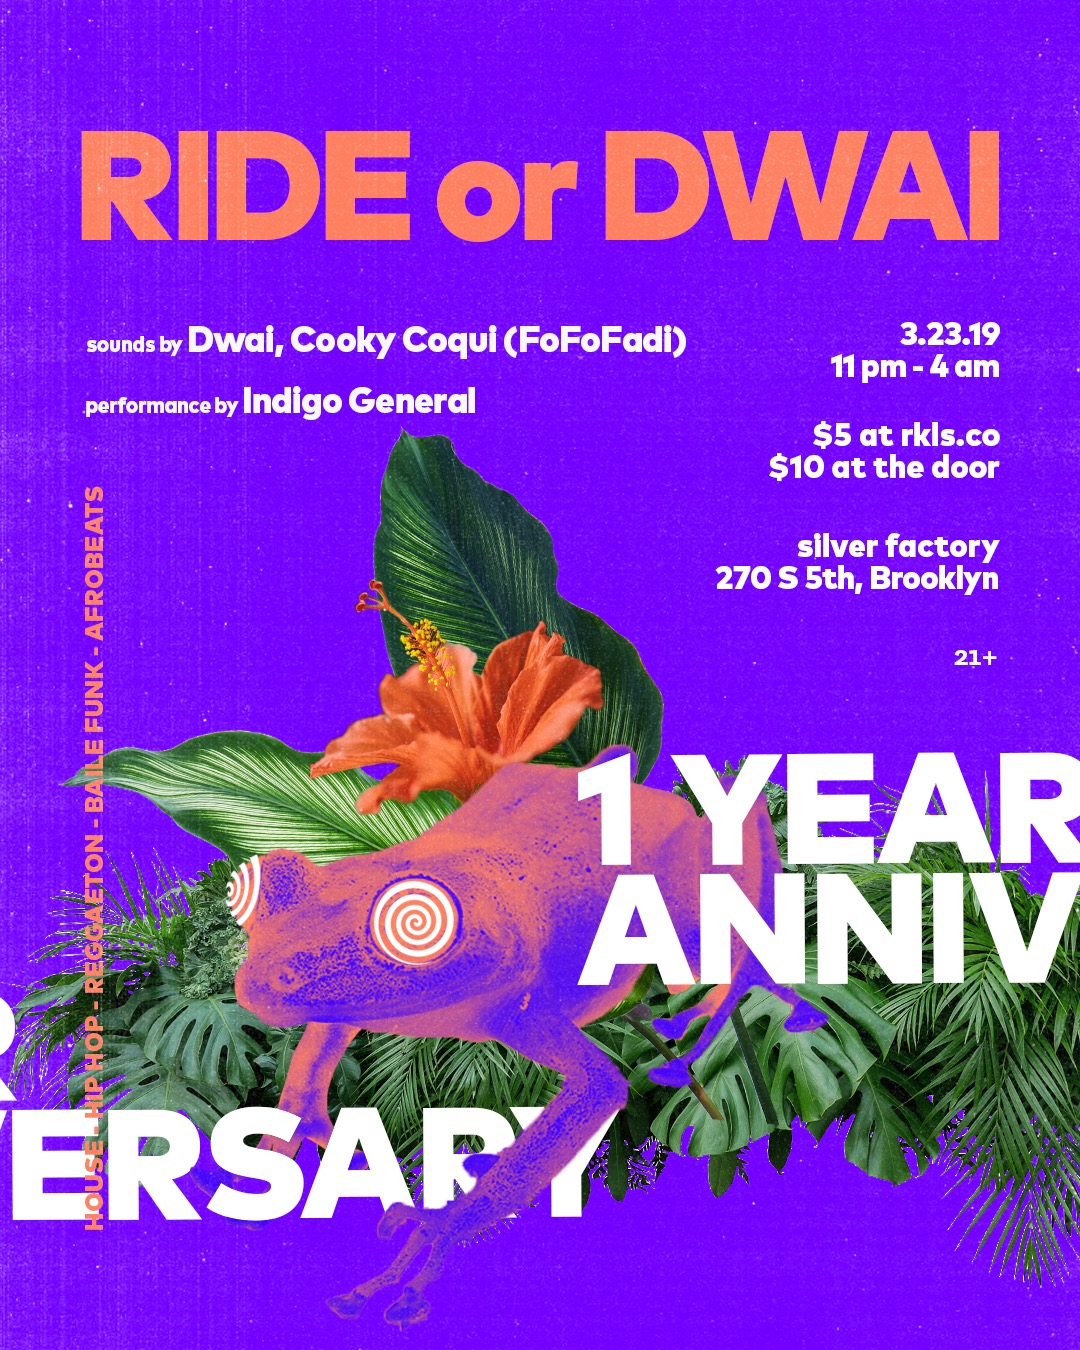 rideOrdwai_March_flyer_11-4_02.jpg